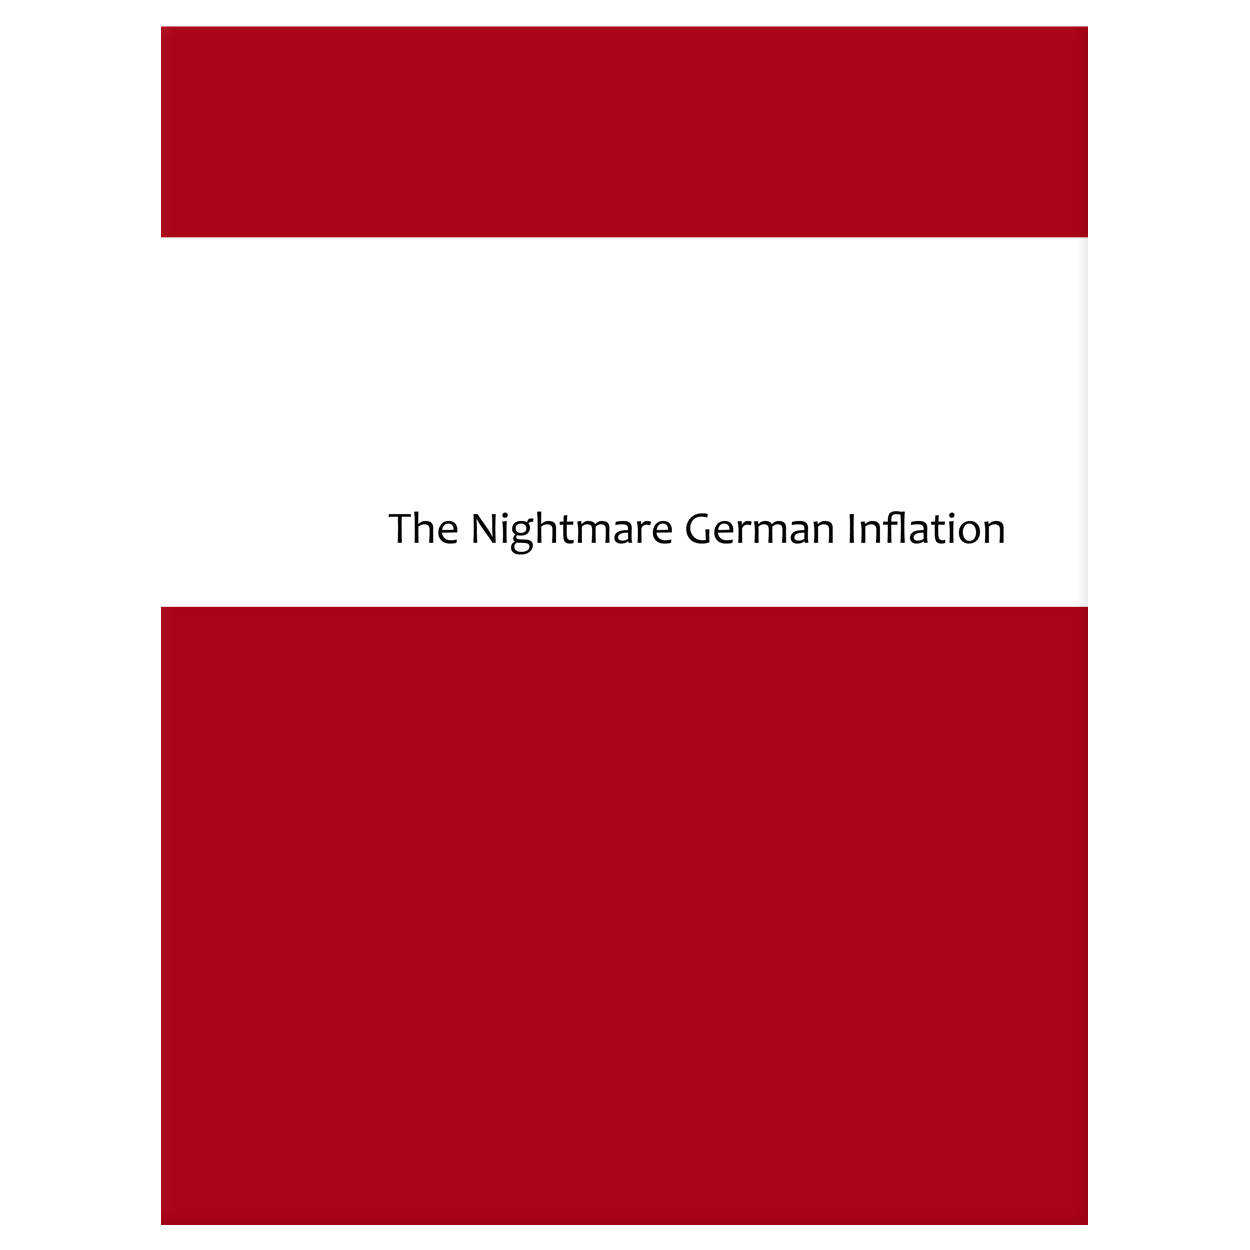 The Nightmare German Inflation by Dr. Irving Reich